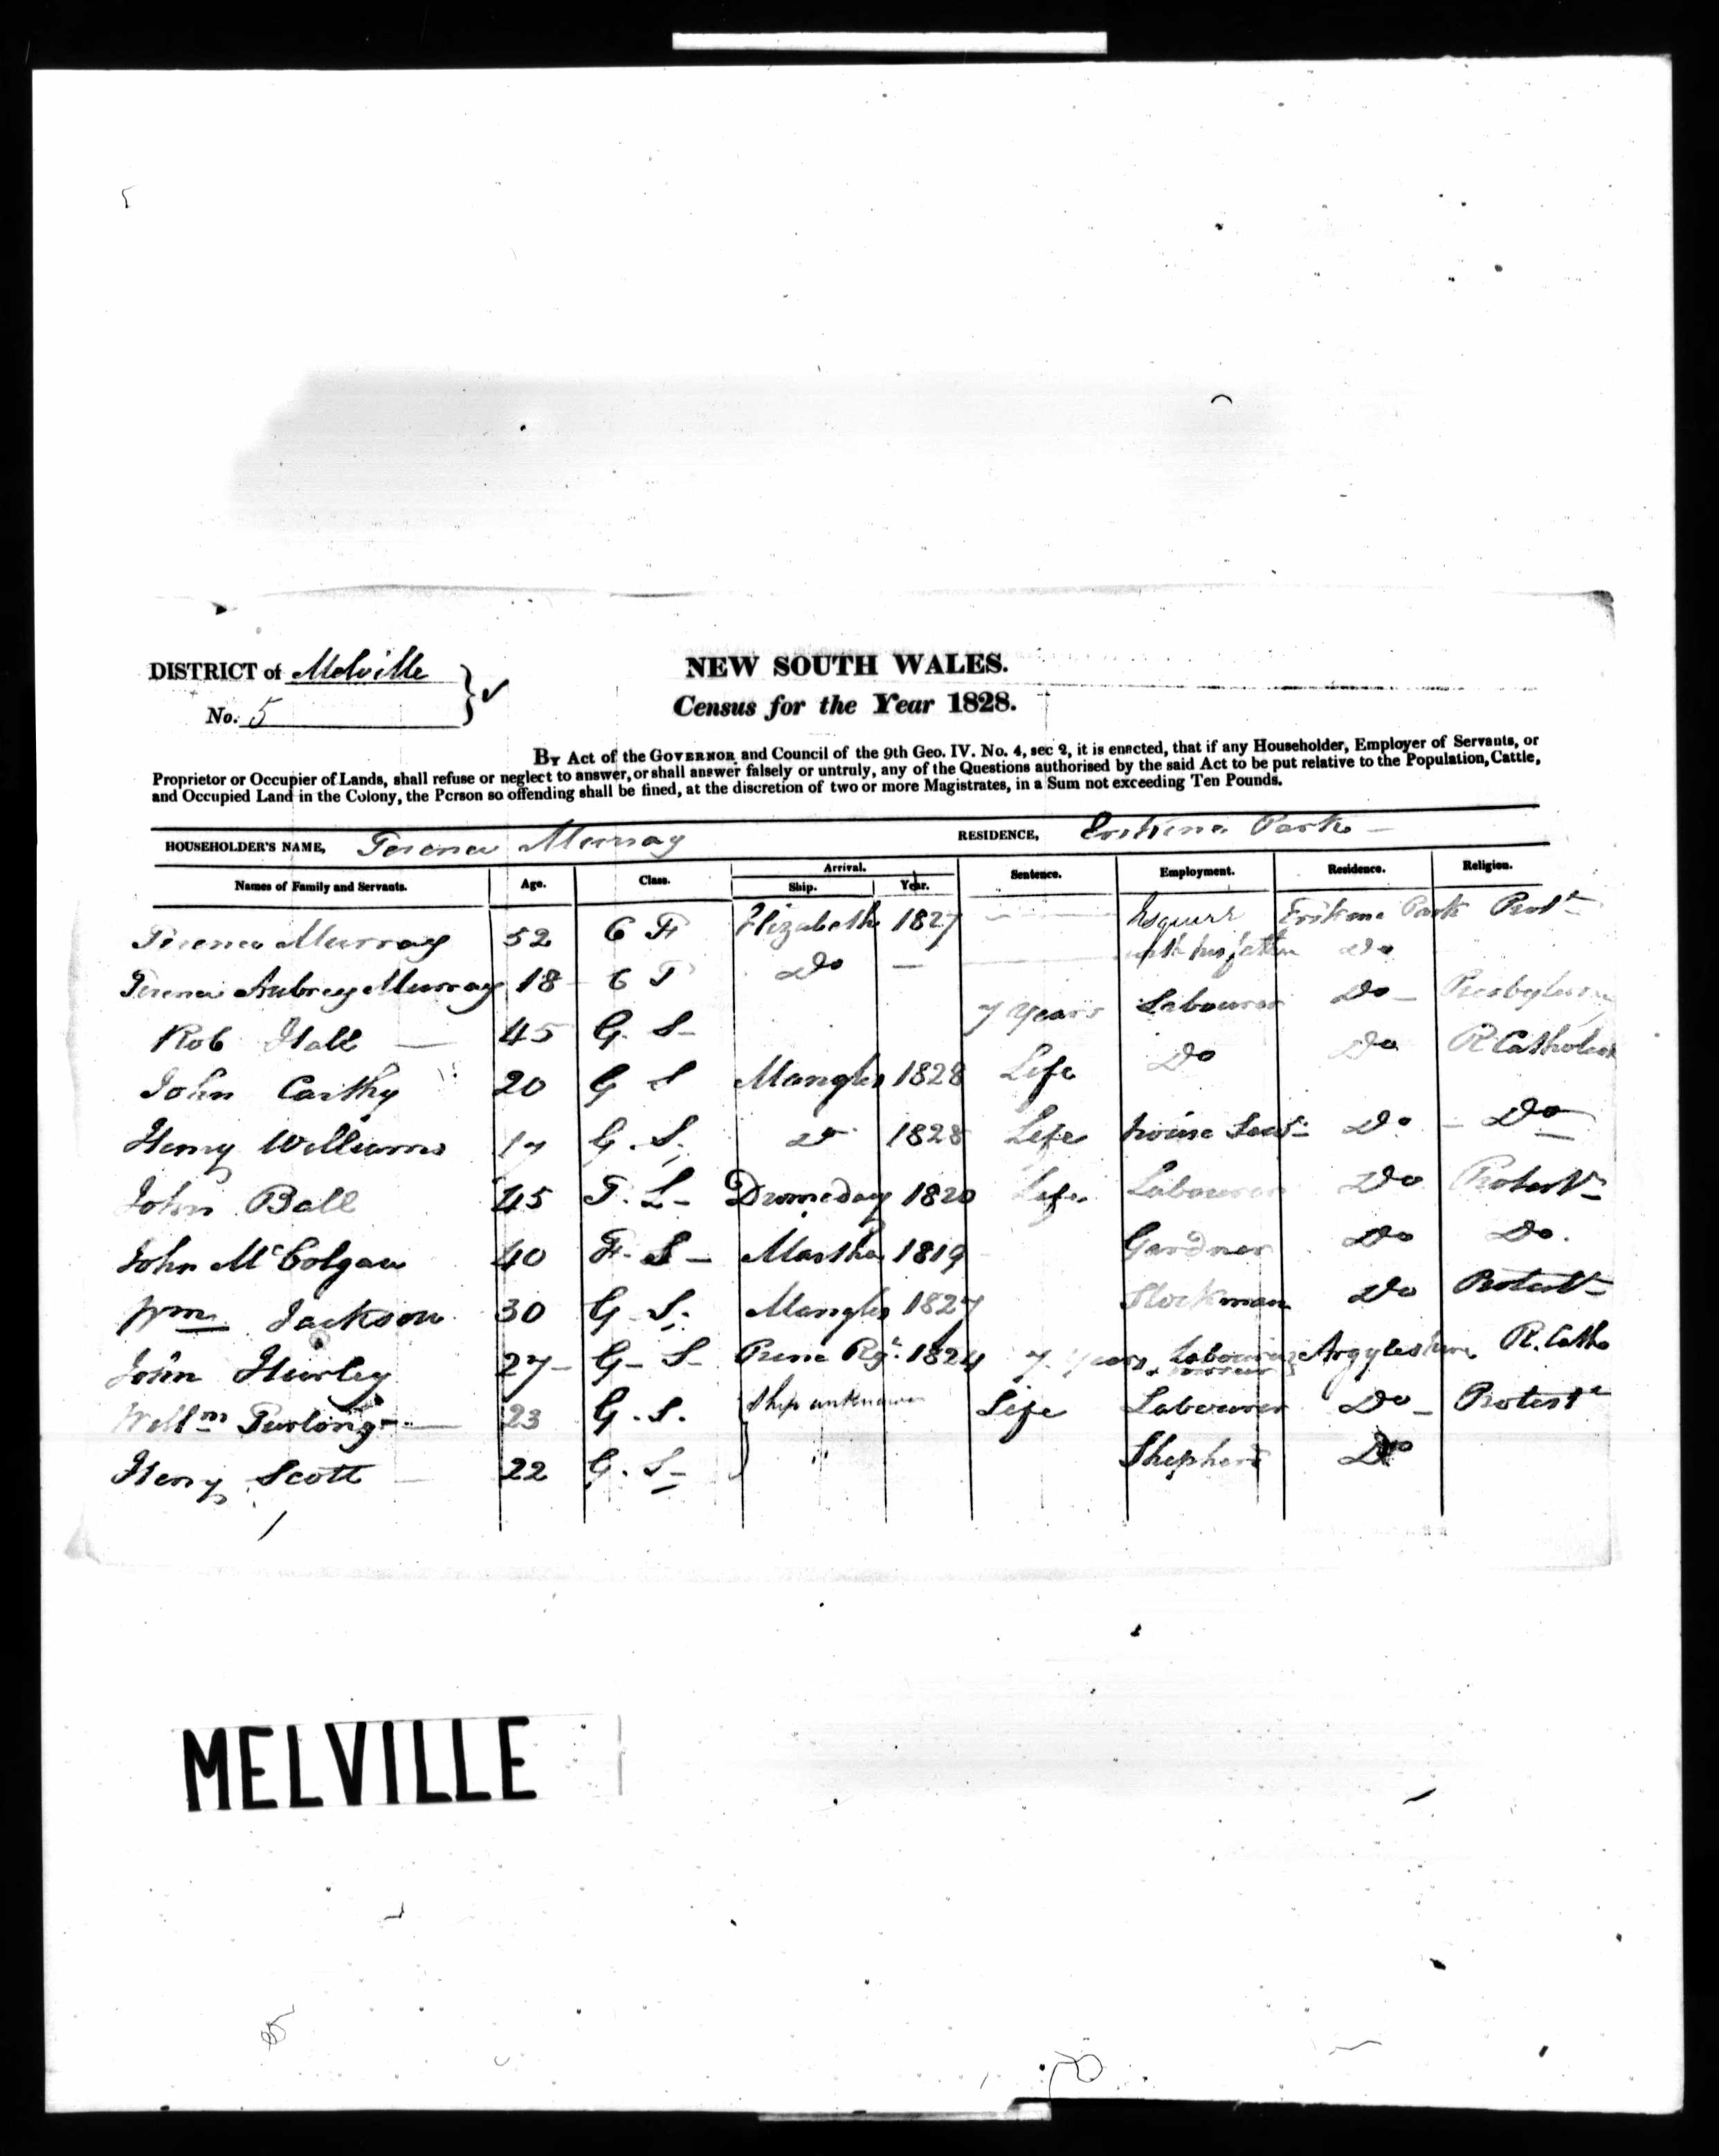 The Murray Family Of Limerick Relatives Matter - Microsoft word free invoice template pioneer woman mercantile online store